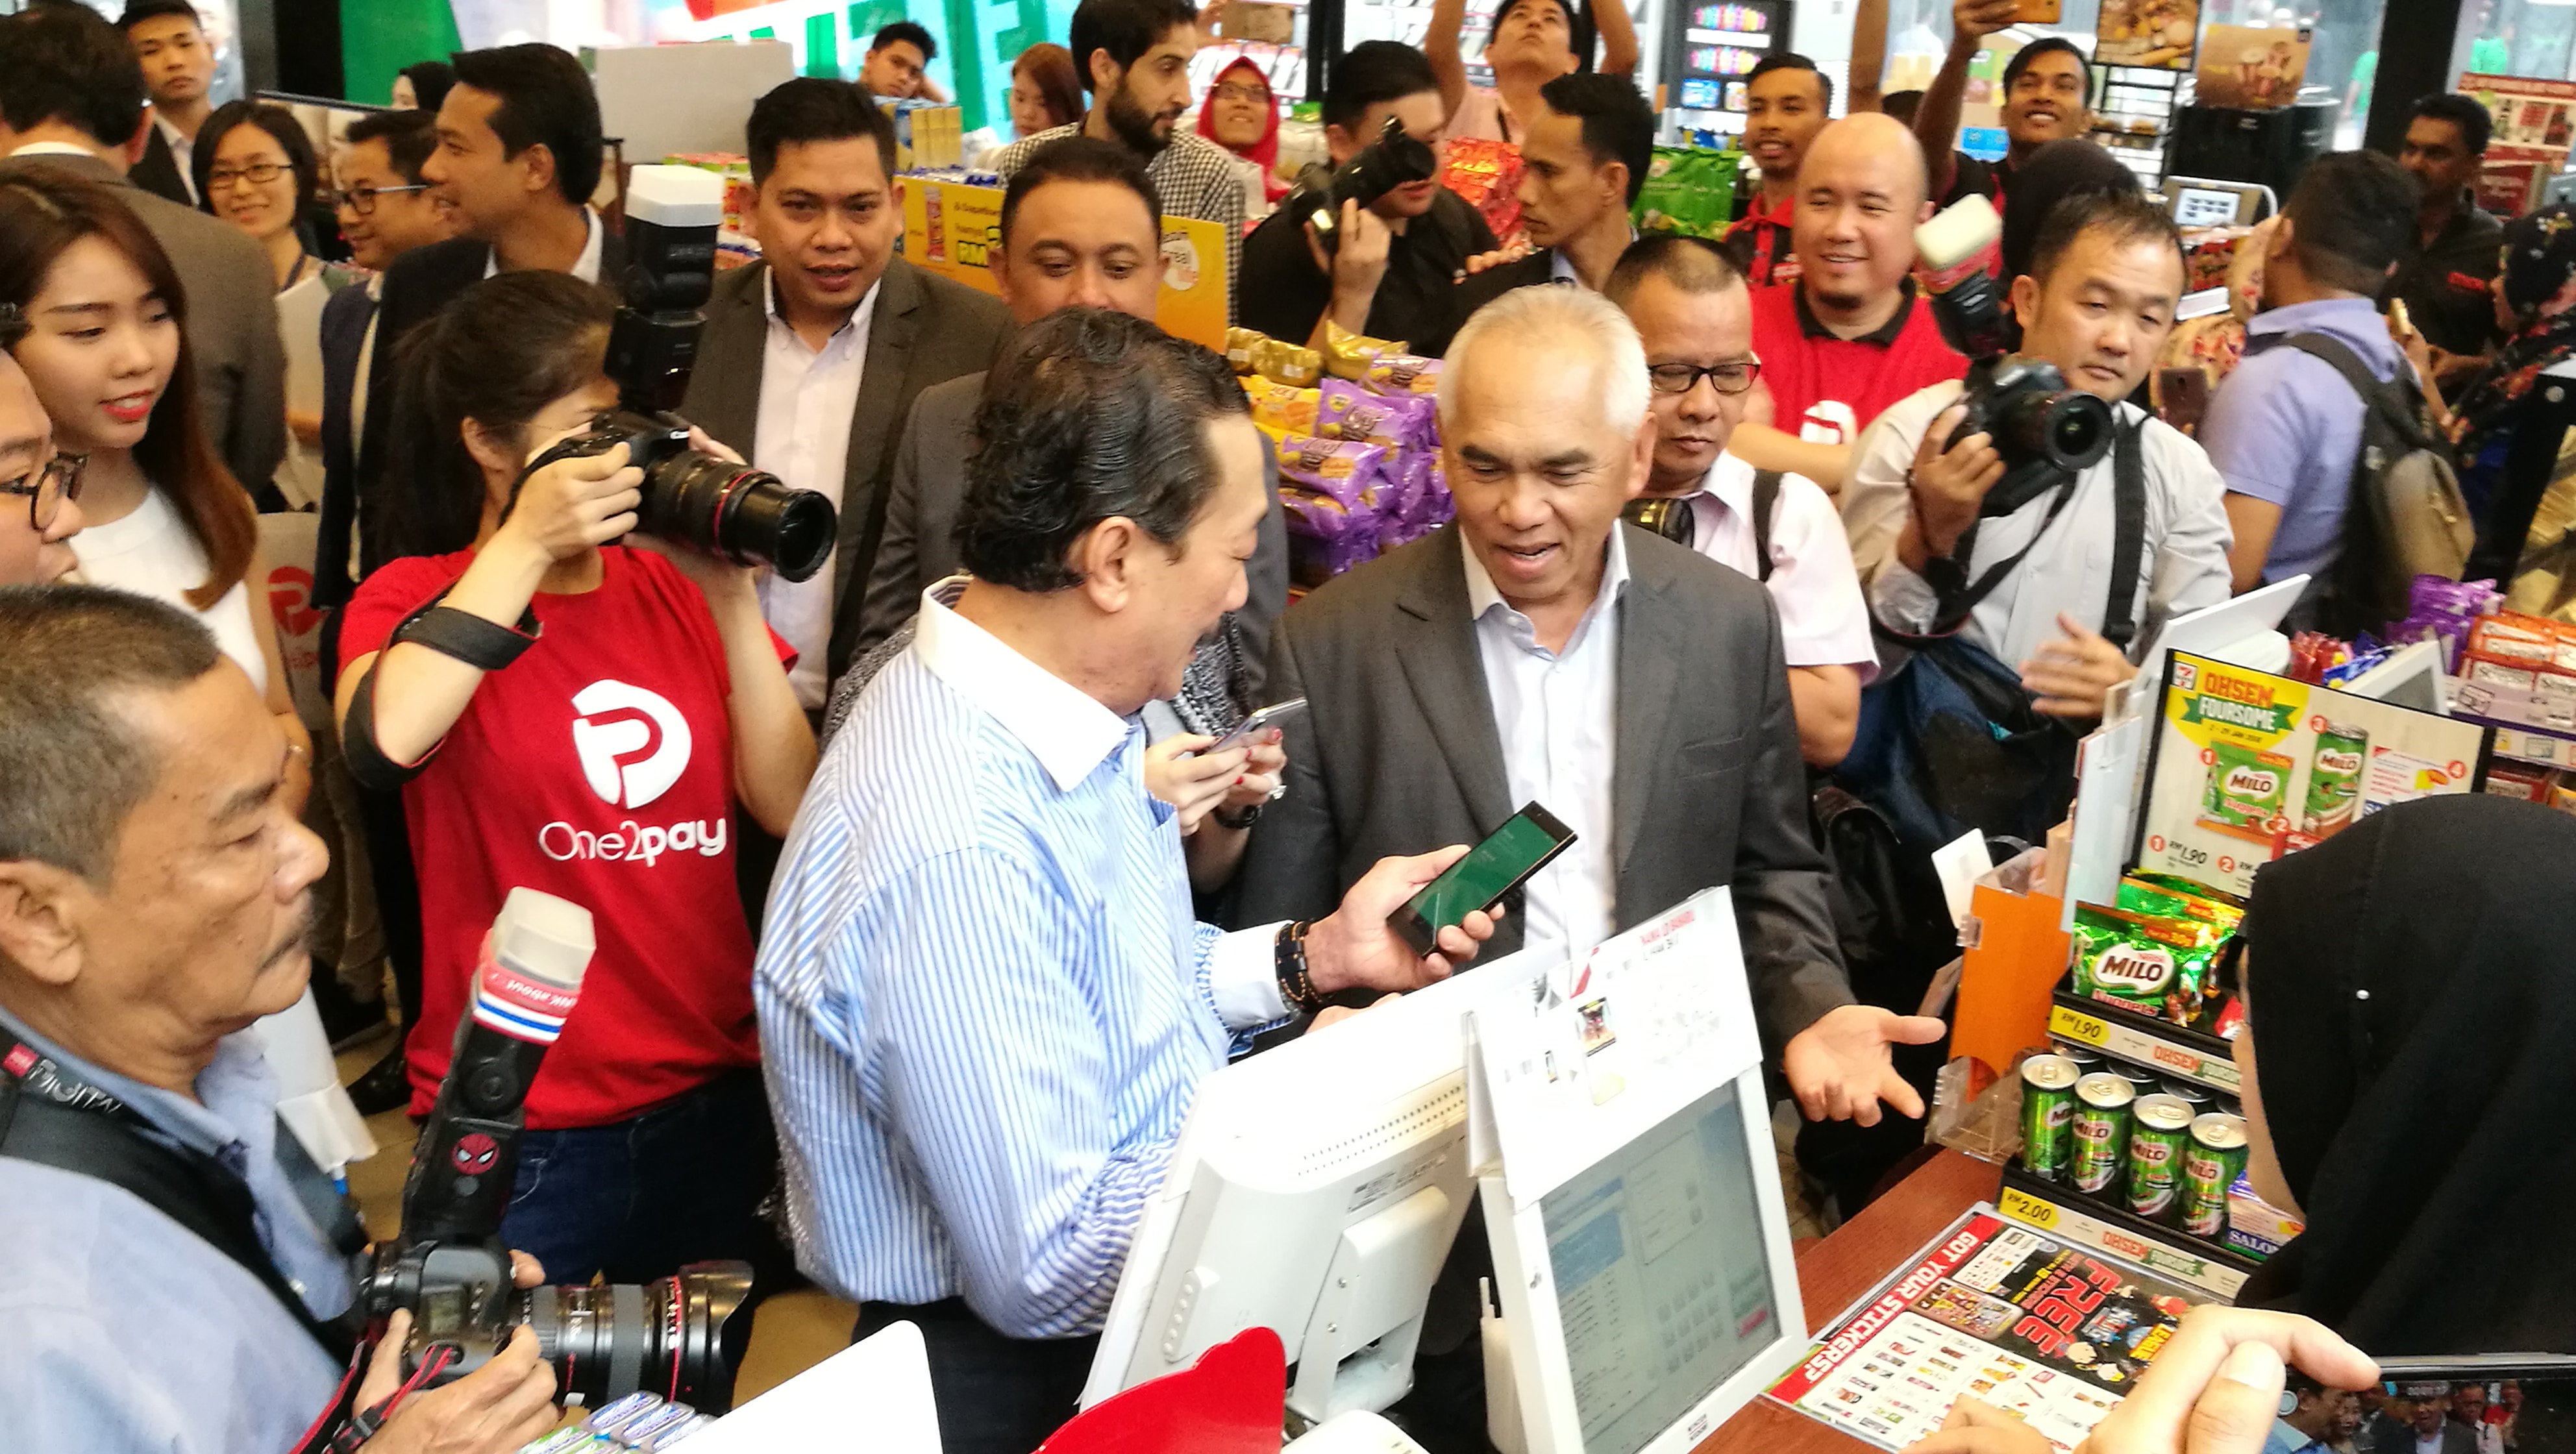 7-Eleven Malaysia rolls out One2pay mobile payment wallet